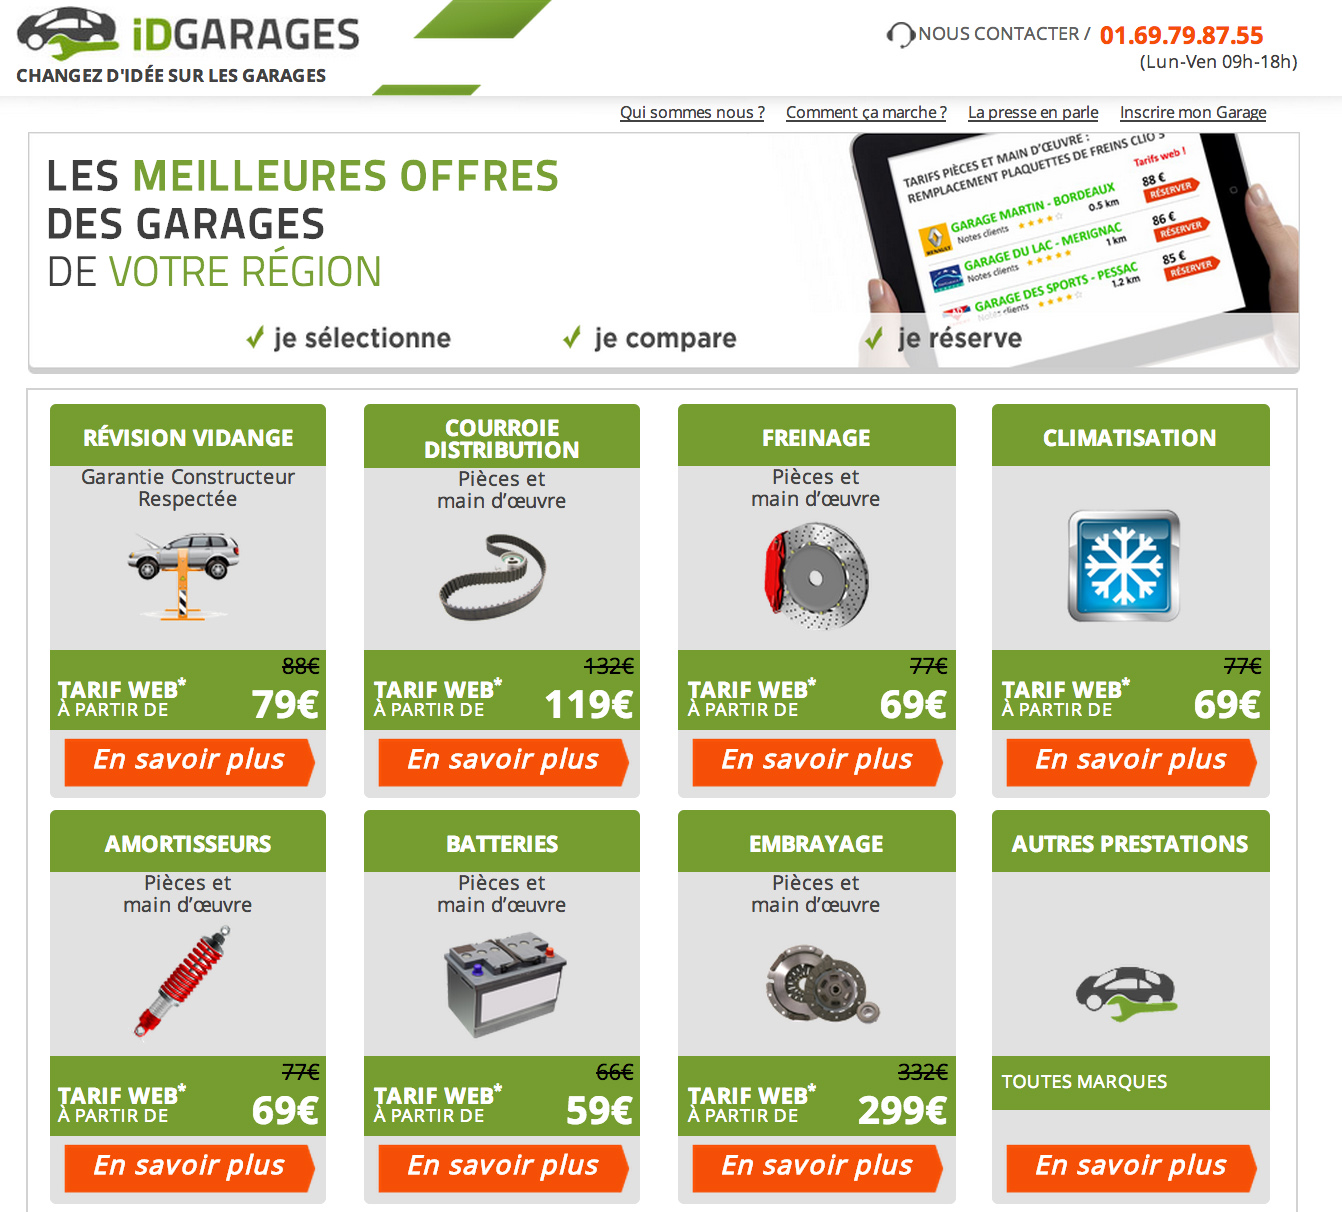 idgarages le premier comparateur de garages